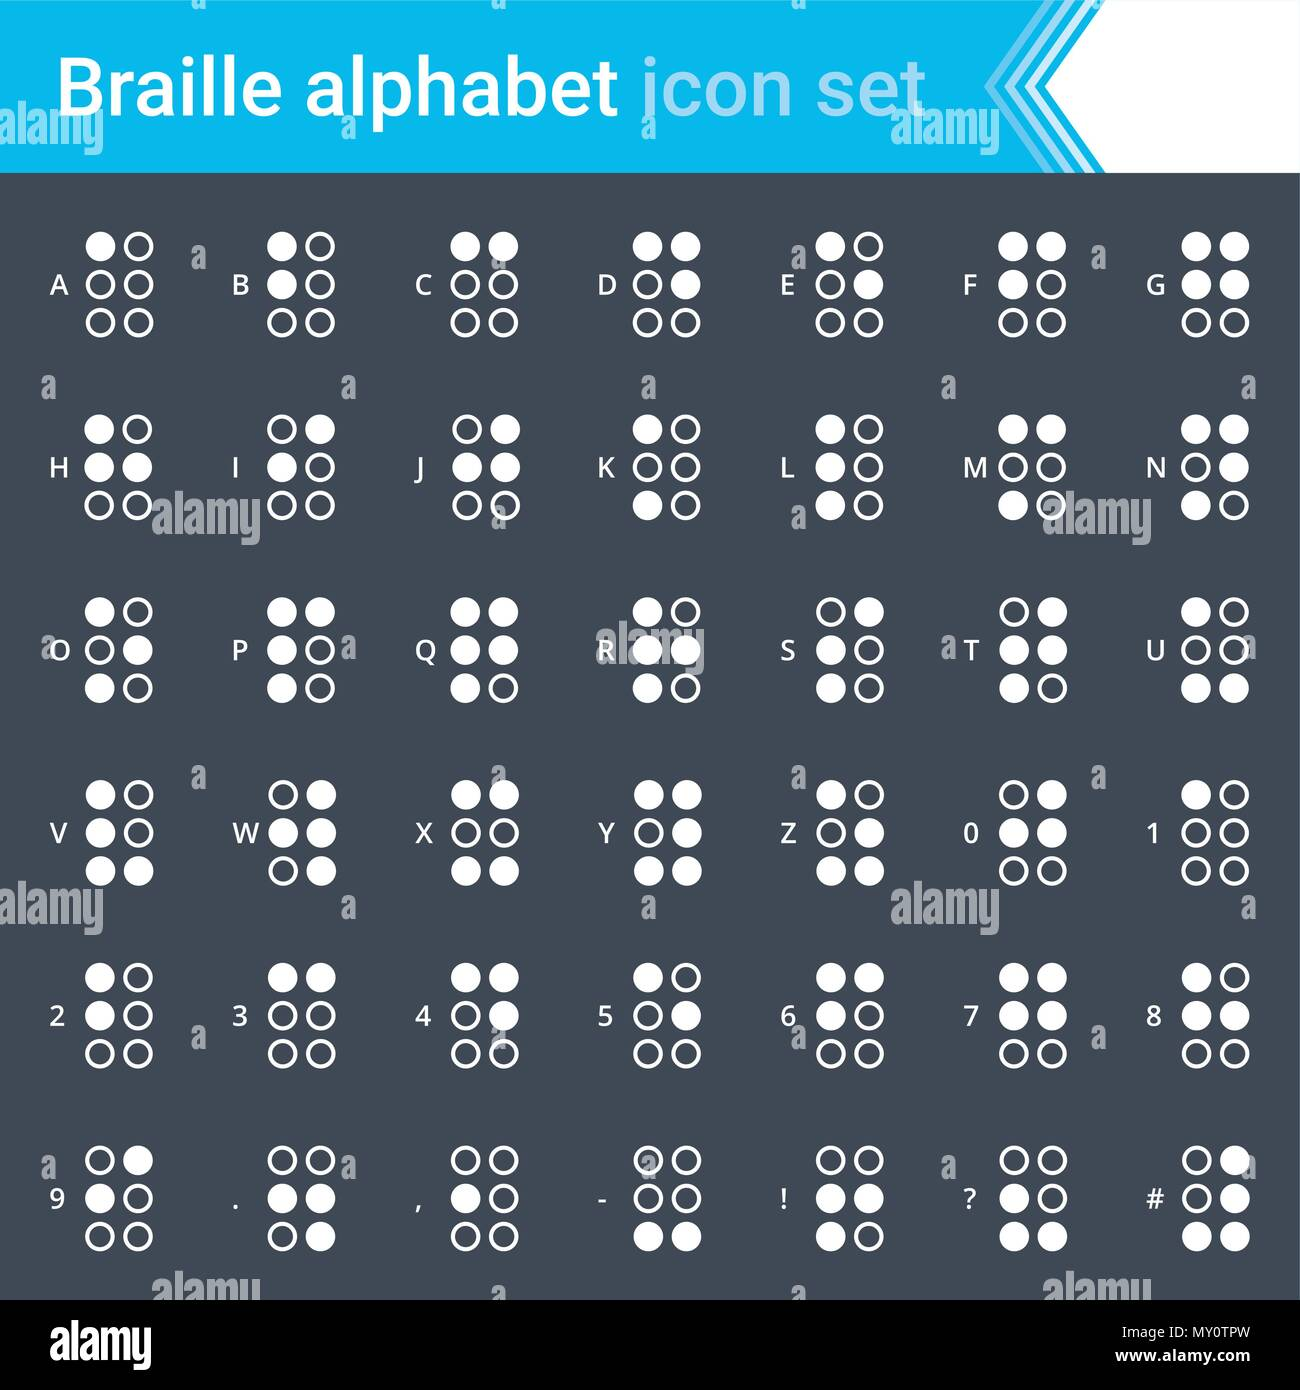 Modern, stroked Braille alphabet icons isolated on dark